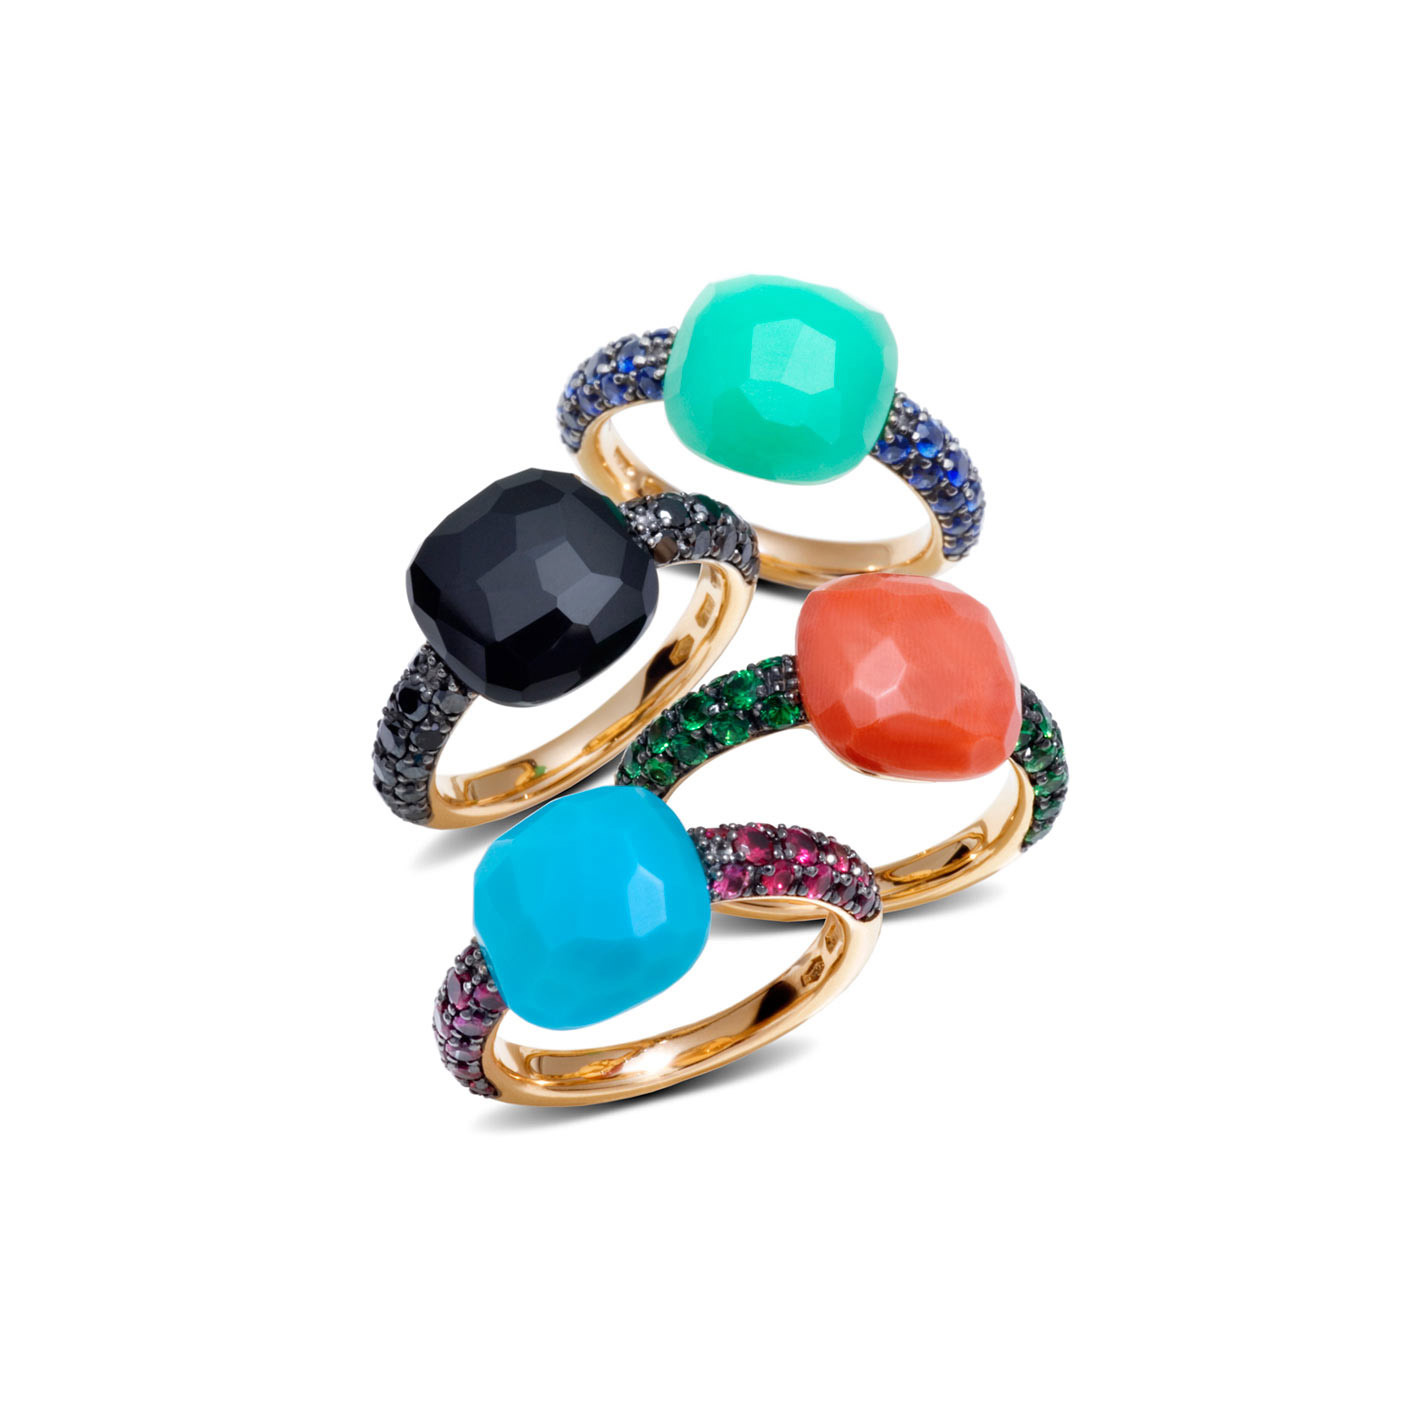 Pomellato Is Inspired in Capri for Her New Jewelry Collection